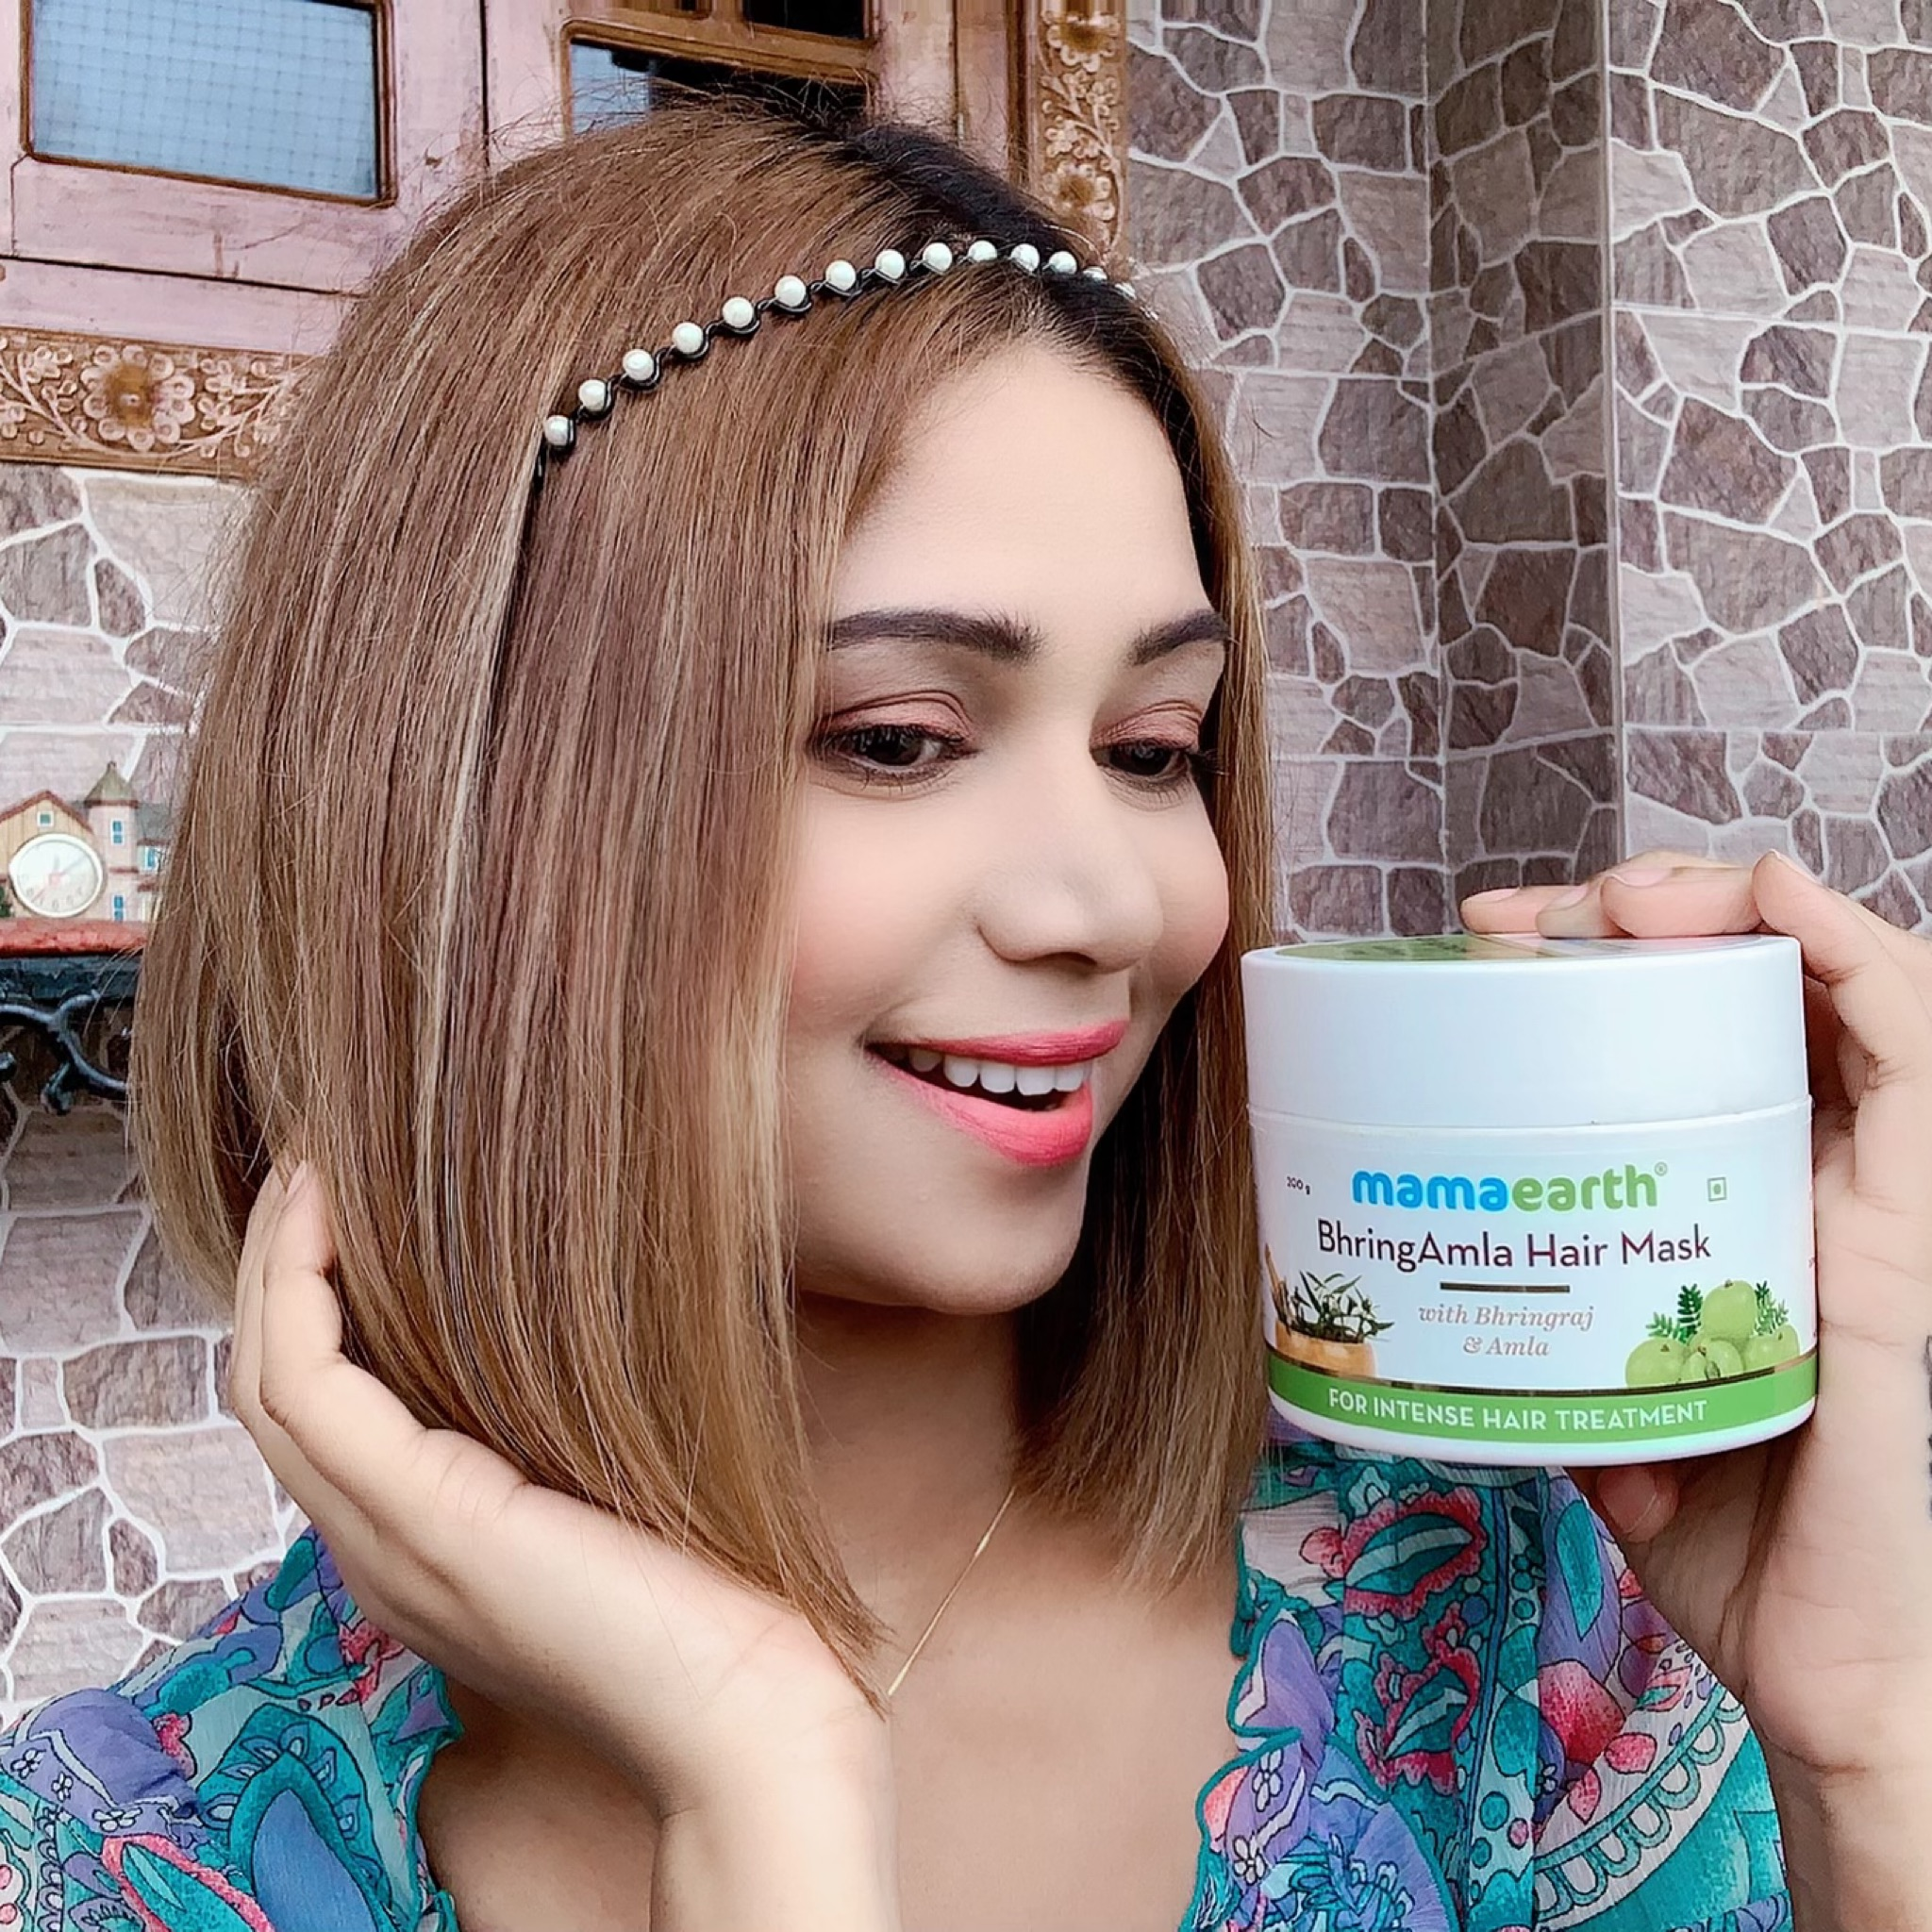 Mamaearth BhringAmla Hair Mask-BEST HAIR MASK WITH AMAZING RESULTS-By mahekhanitha-4